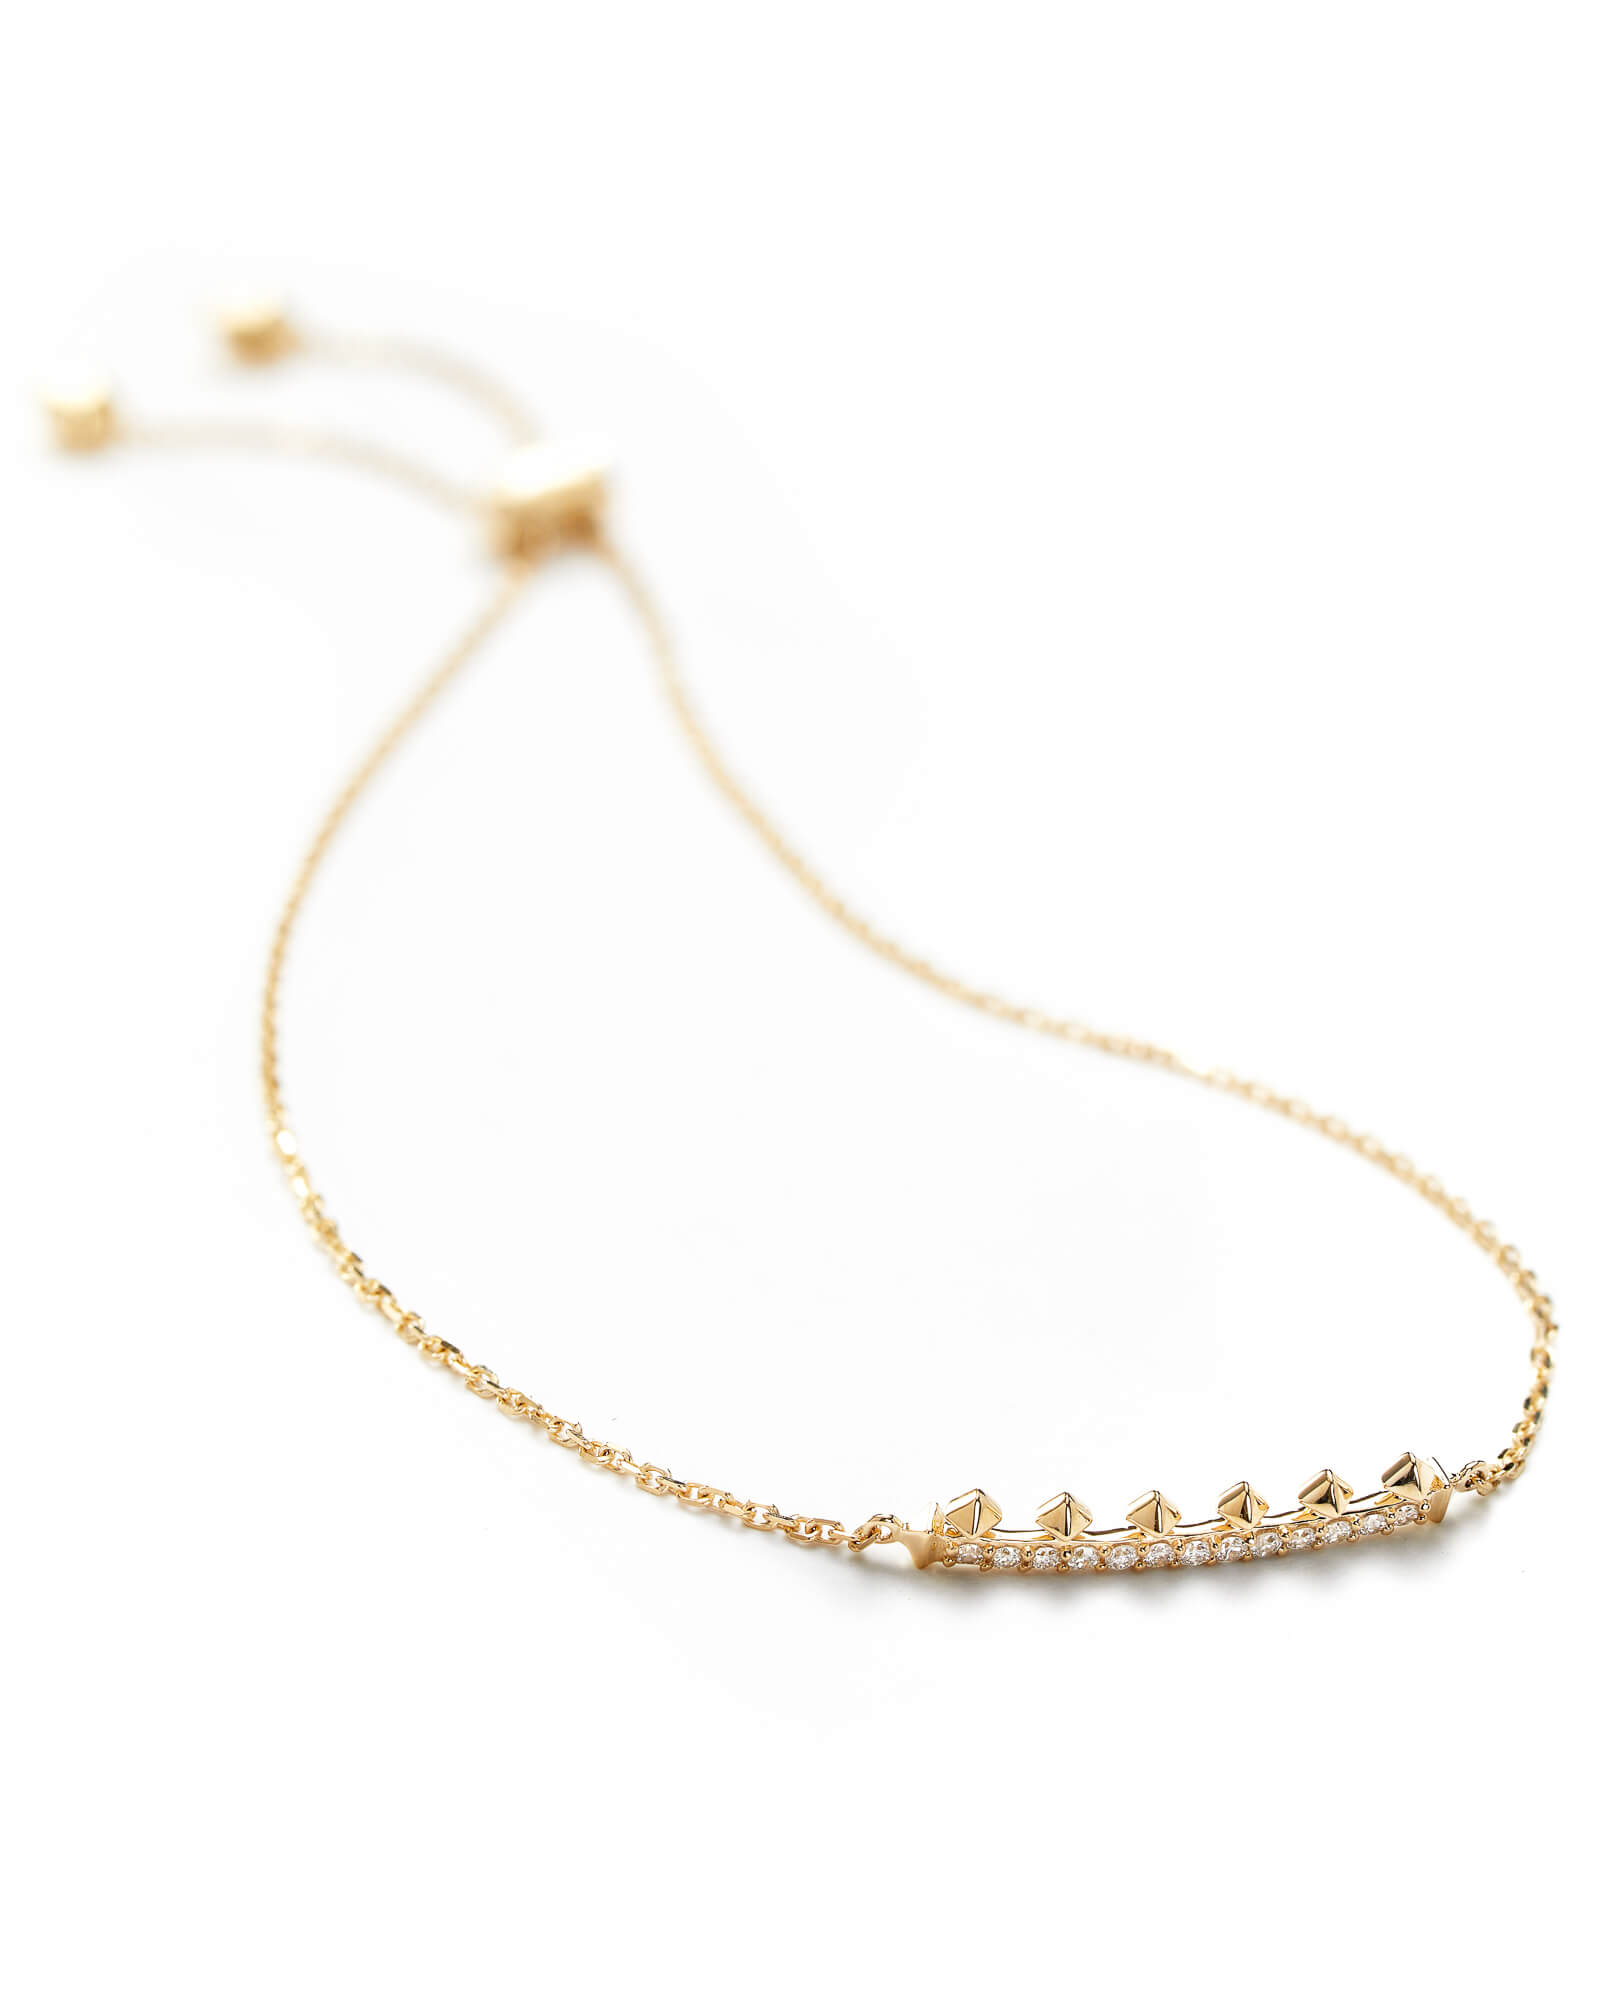 Molly Adjustable Chain Bracelet in White Diamond and 14k Yellow Gold